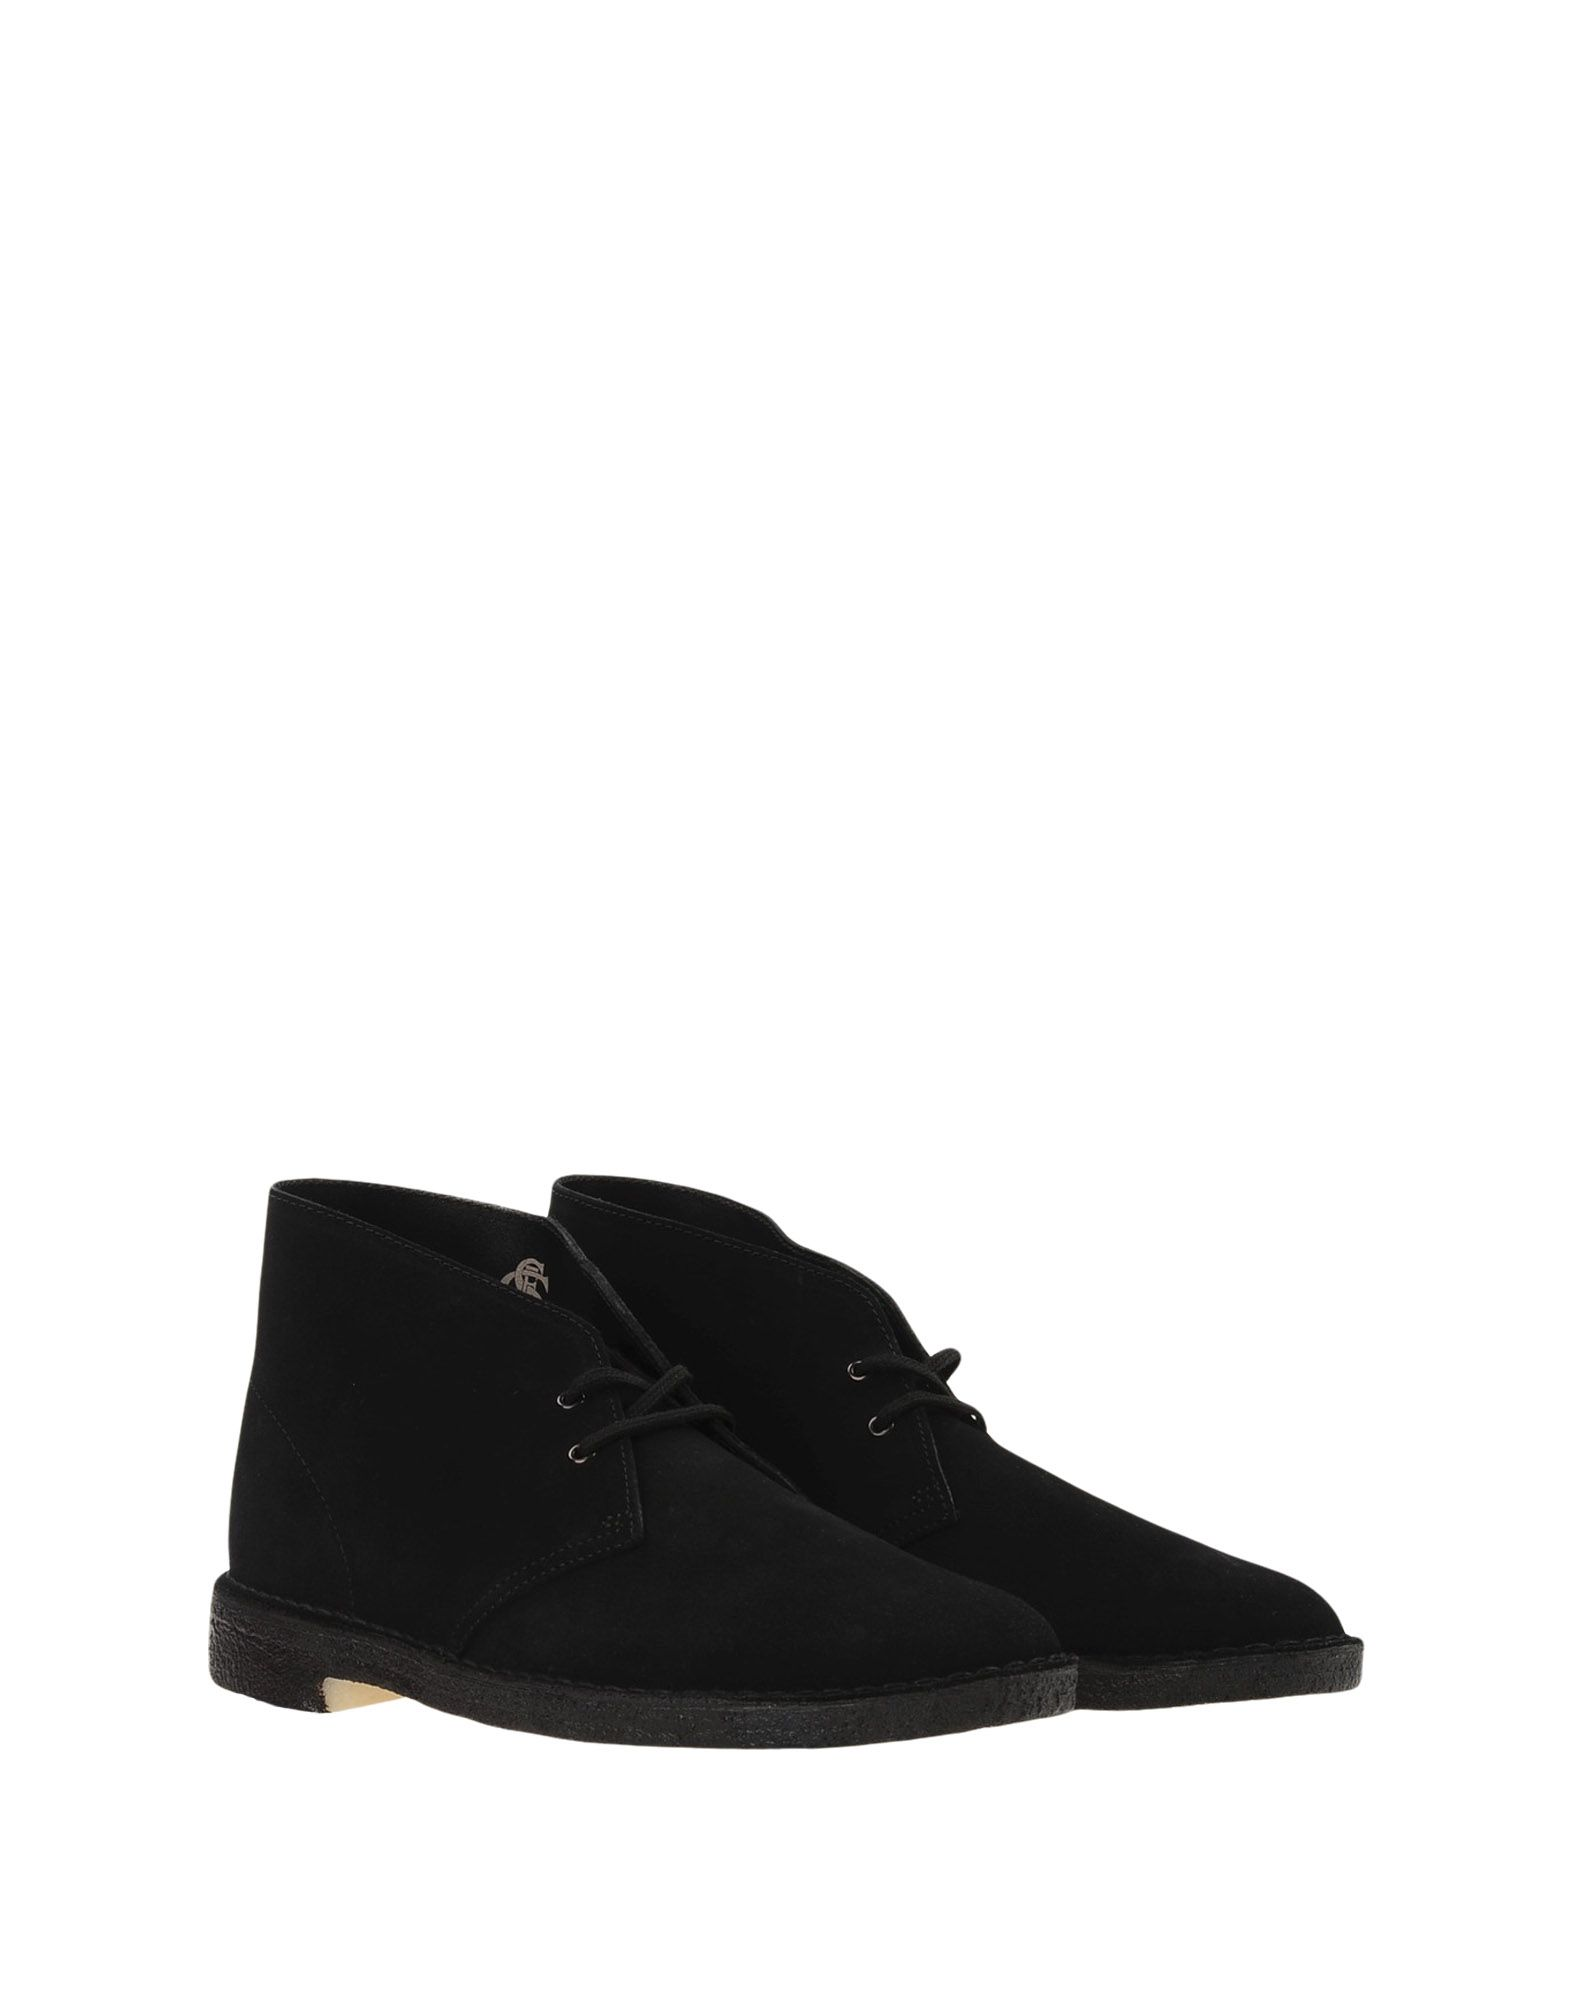 Bottine Clarks Homme - Bottines Clarks sur